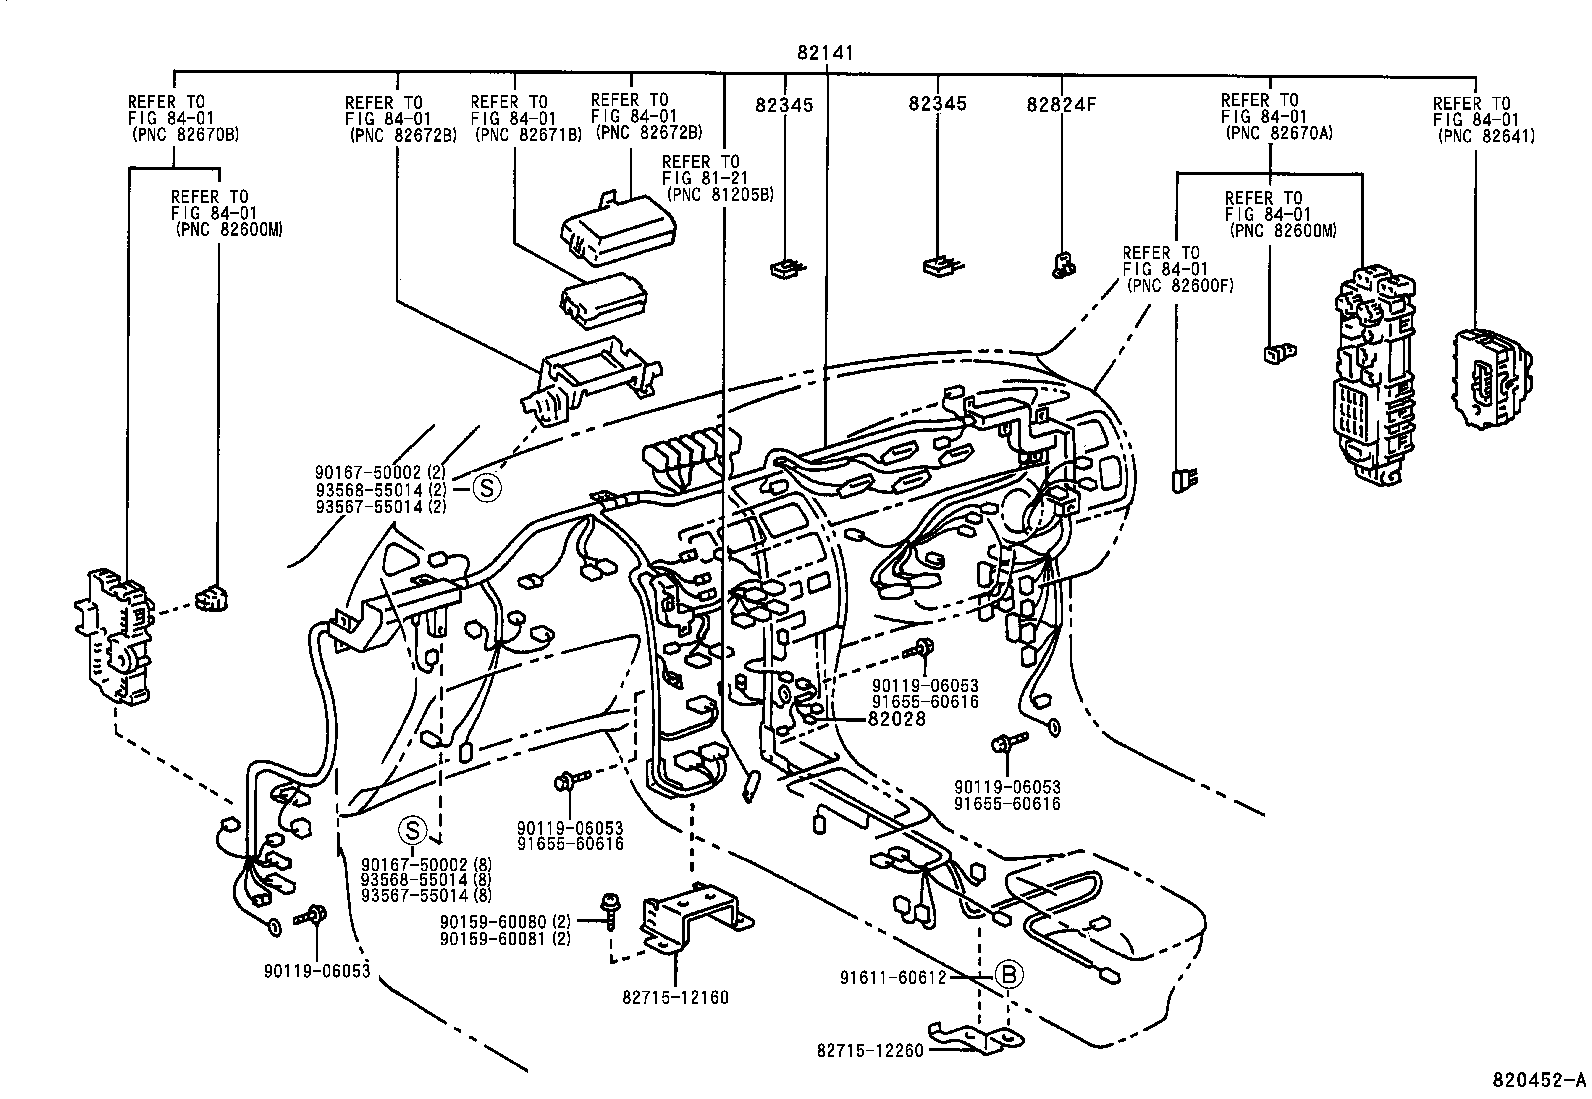 1993 Corolla Engine Diagram